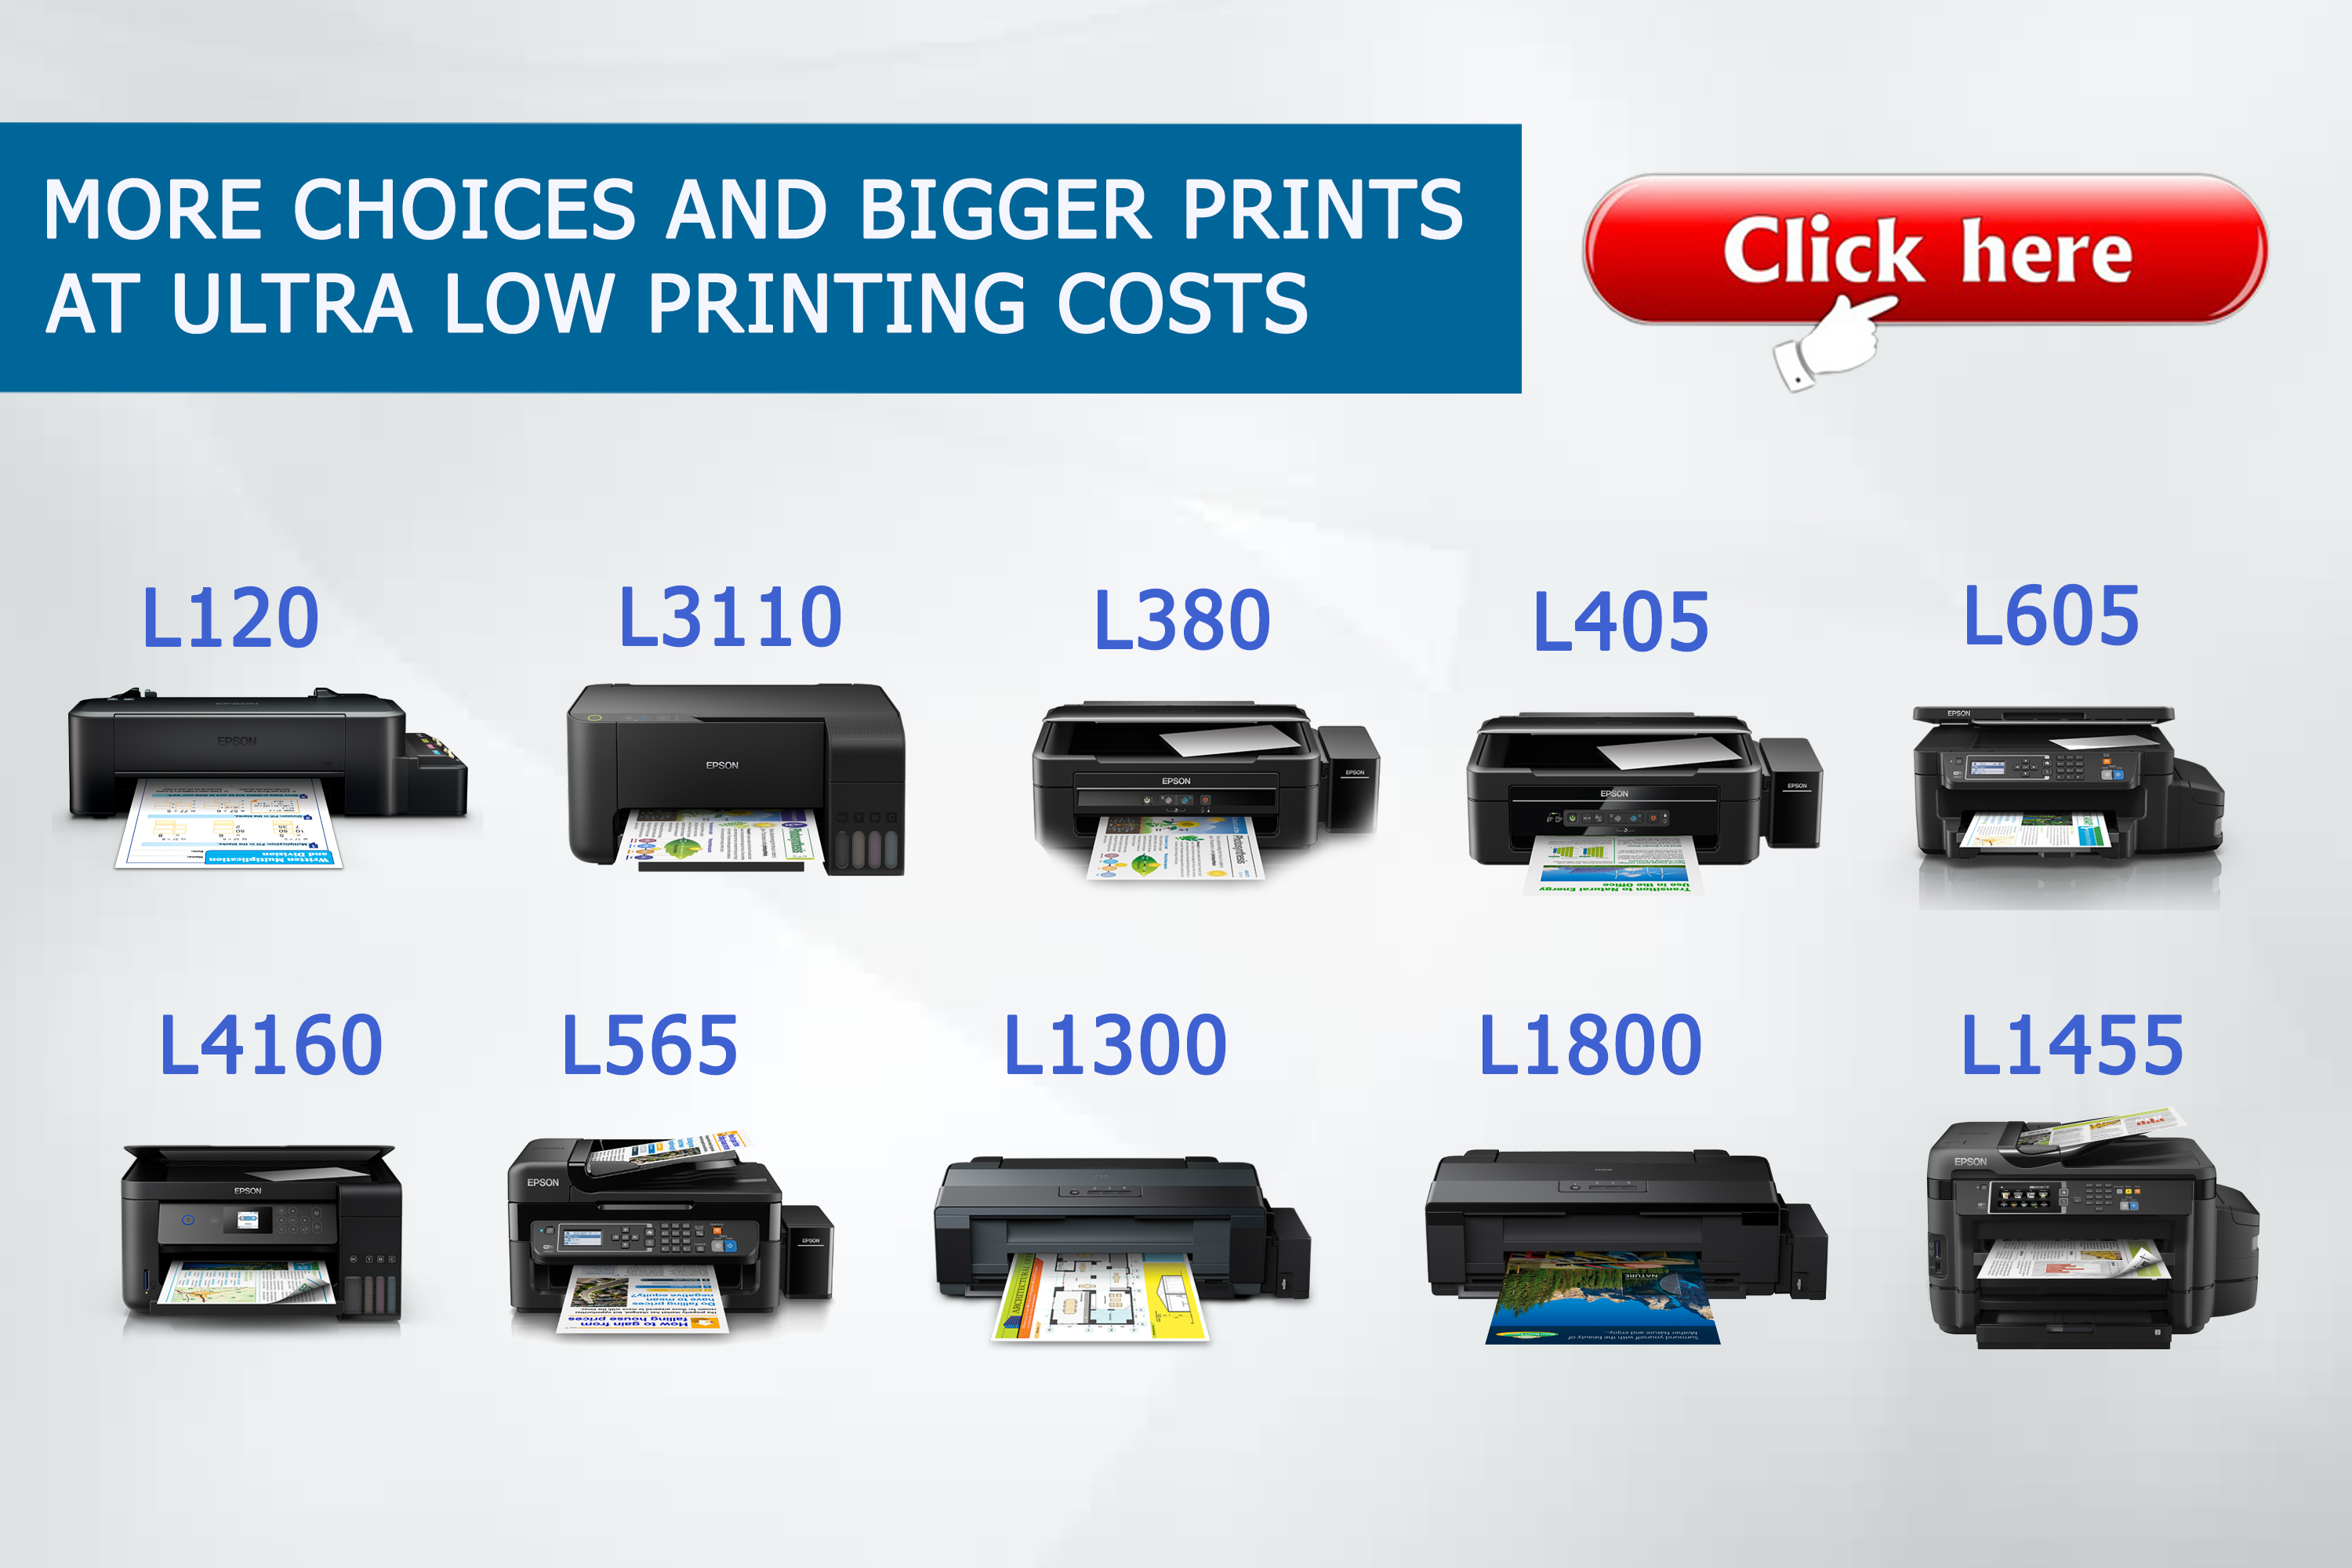 Driver Epson L120 Windows 8 64 Bit Sfb Tinta Specifications Of Single Function Ink Tank System Printer Black With Free Universal